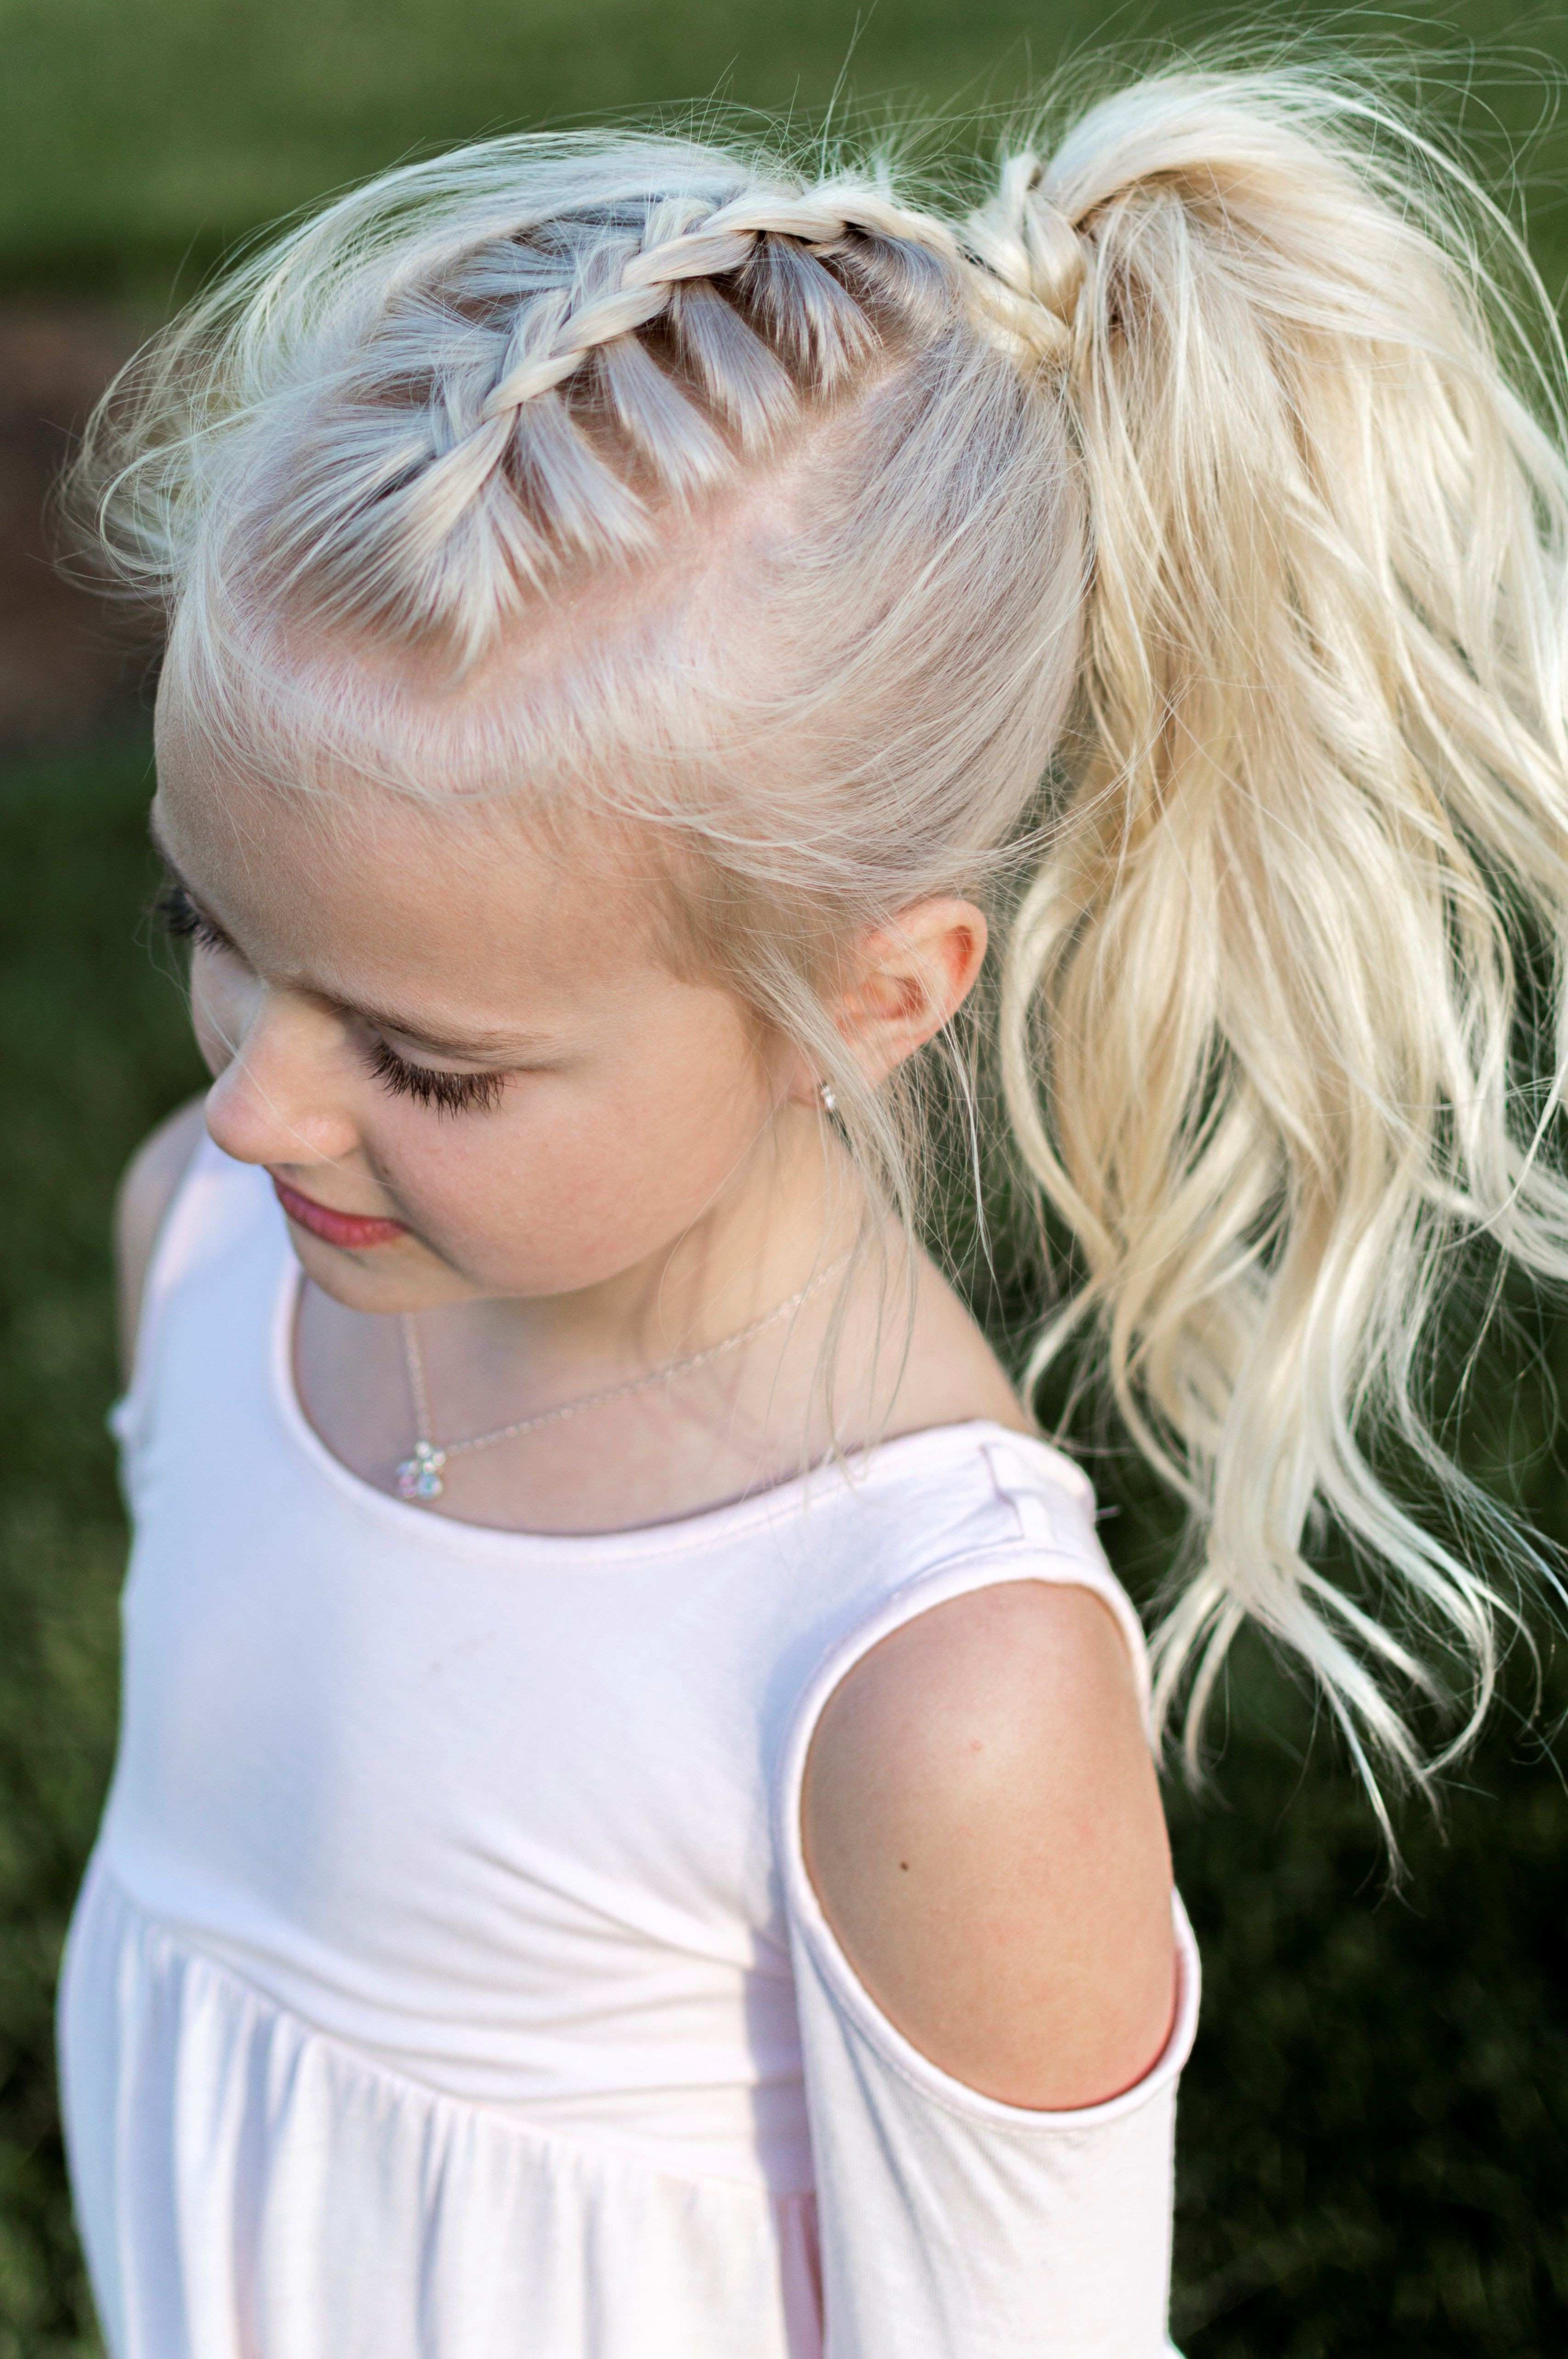 Fashion : Most Captivating Ponytail Fishtail Braid Pertaining To Recent Ponytail Fishtail Braided Hairstyles (View 5 of 20)